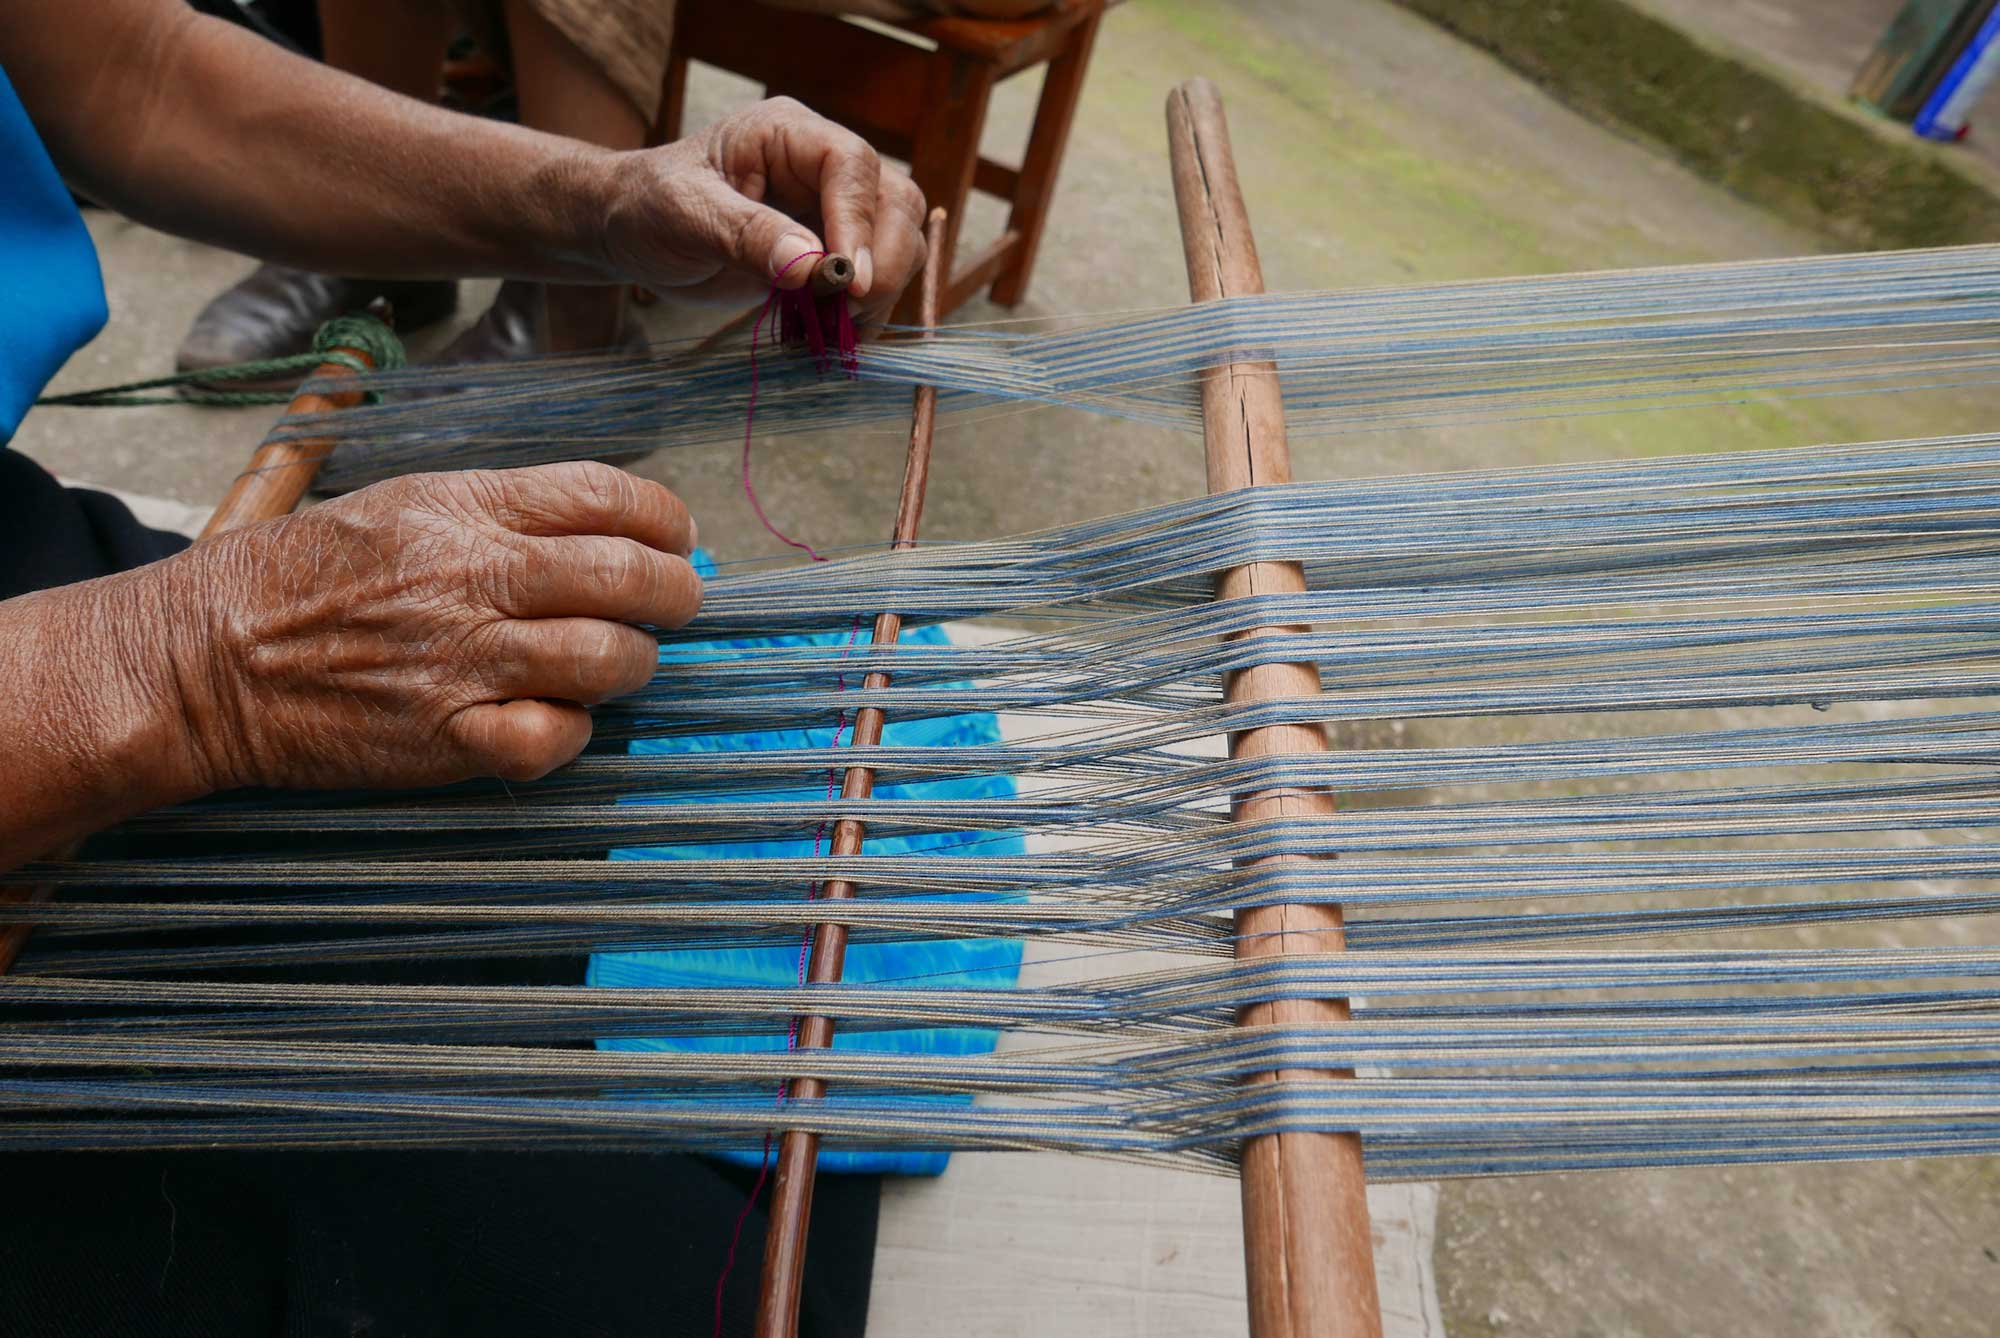 Artisan Backstrap Weaving Cotton Textiles Chiapas Mexico